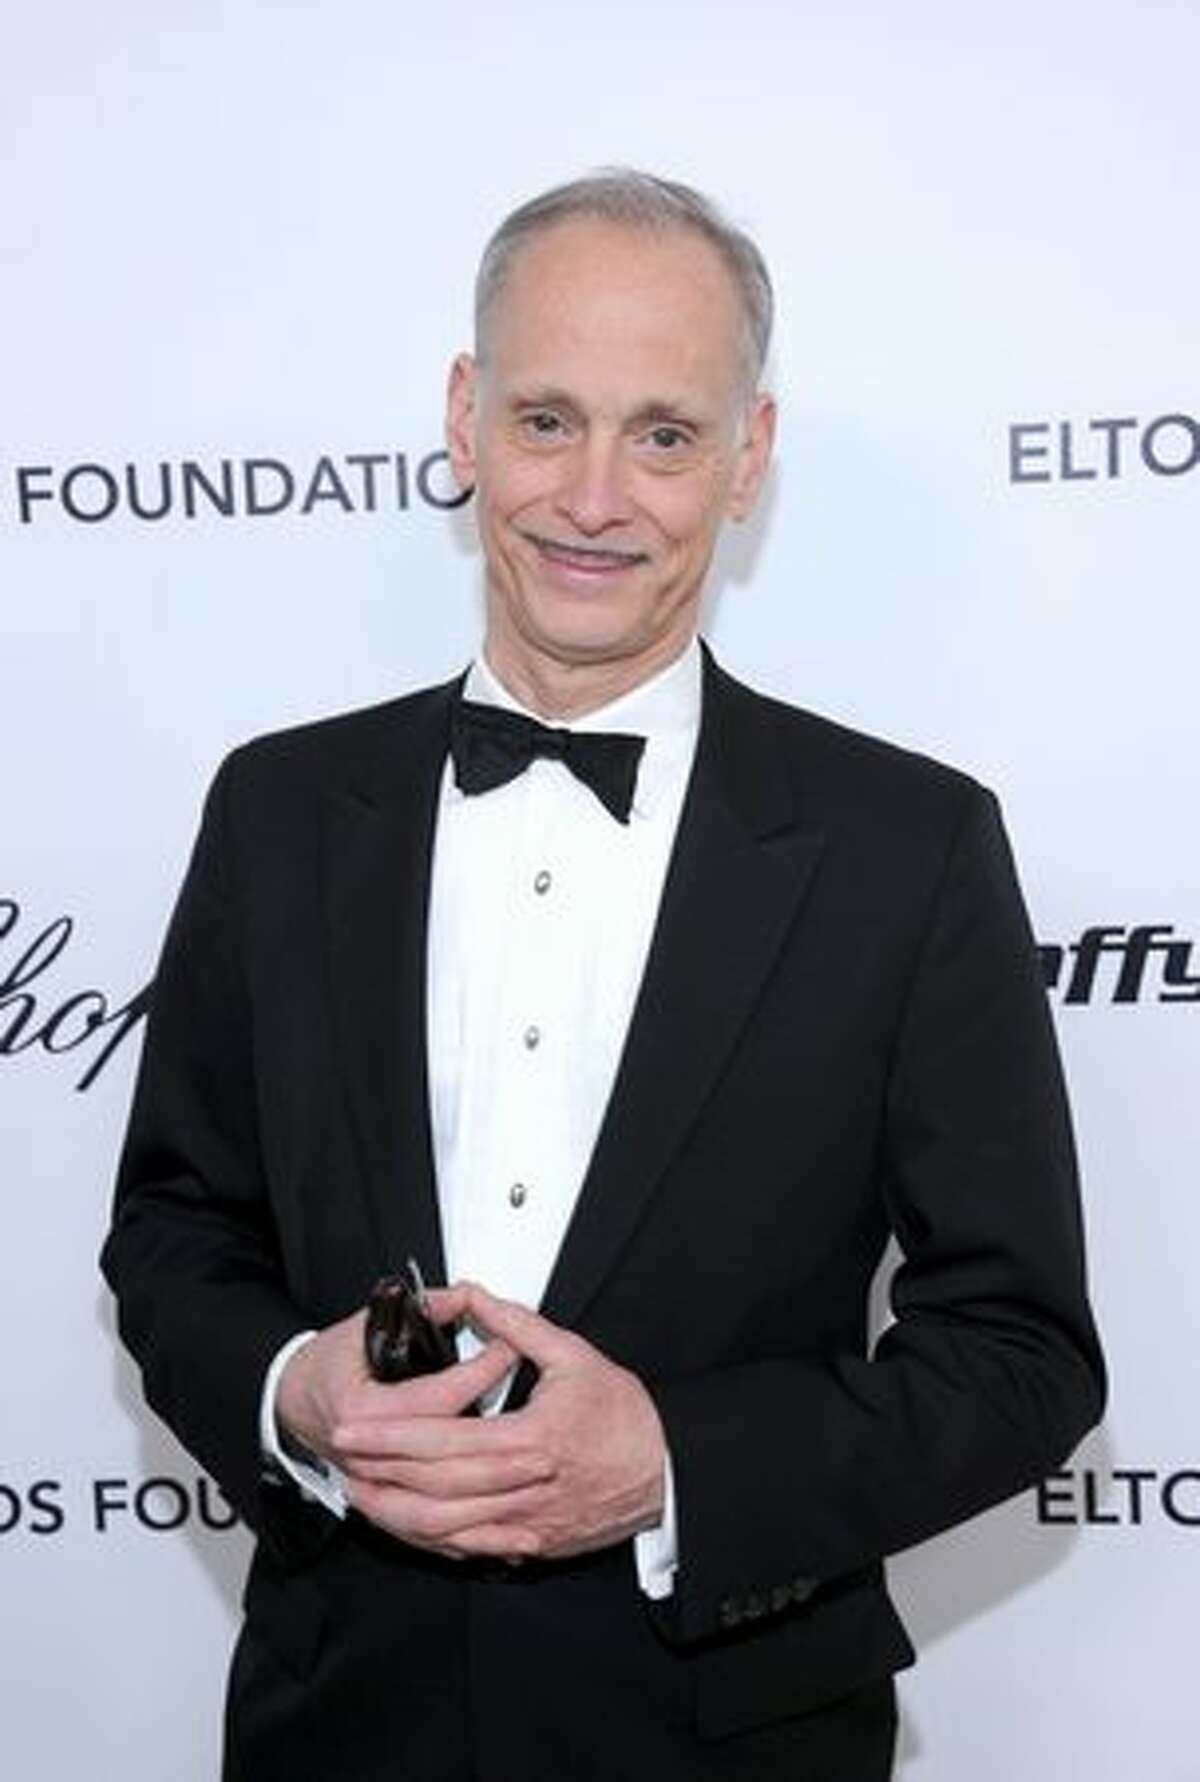 Filmmaker John Waters arrives at the 19th Annual Elton John AIDS Foundation Academy Awards Viewing Party at the Pacific Design Center in West Hollywood, California.